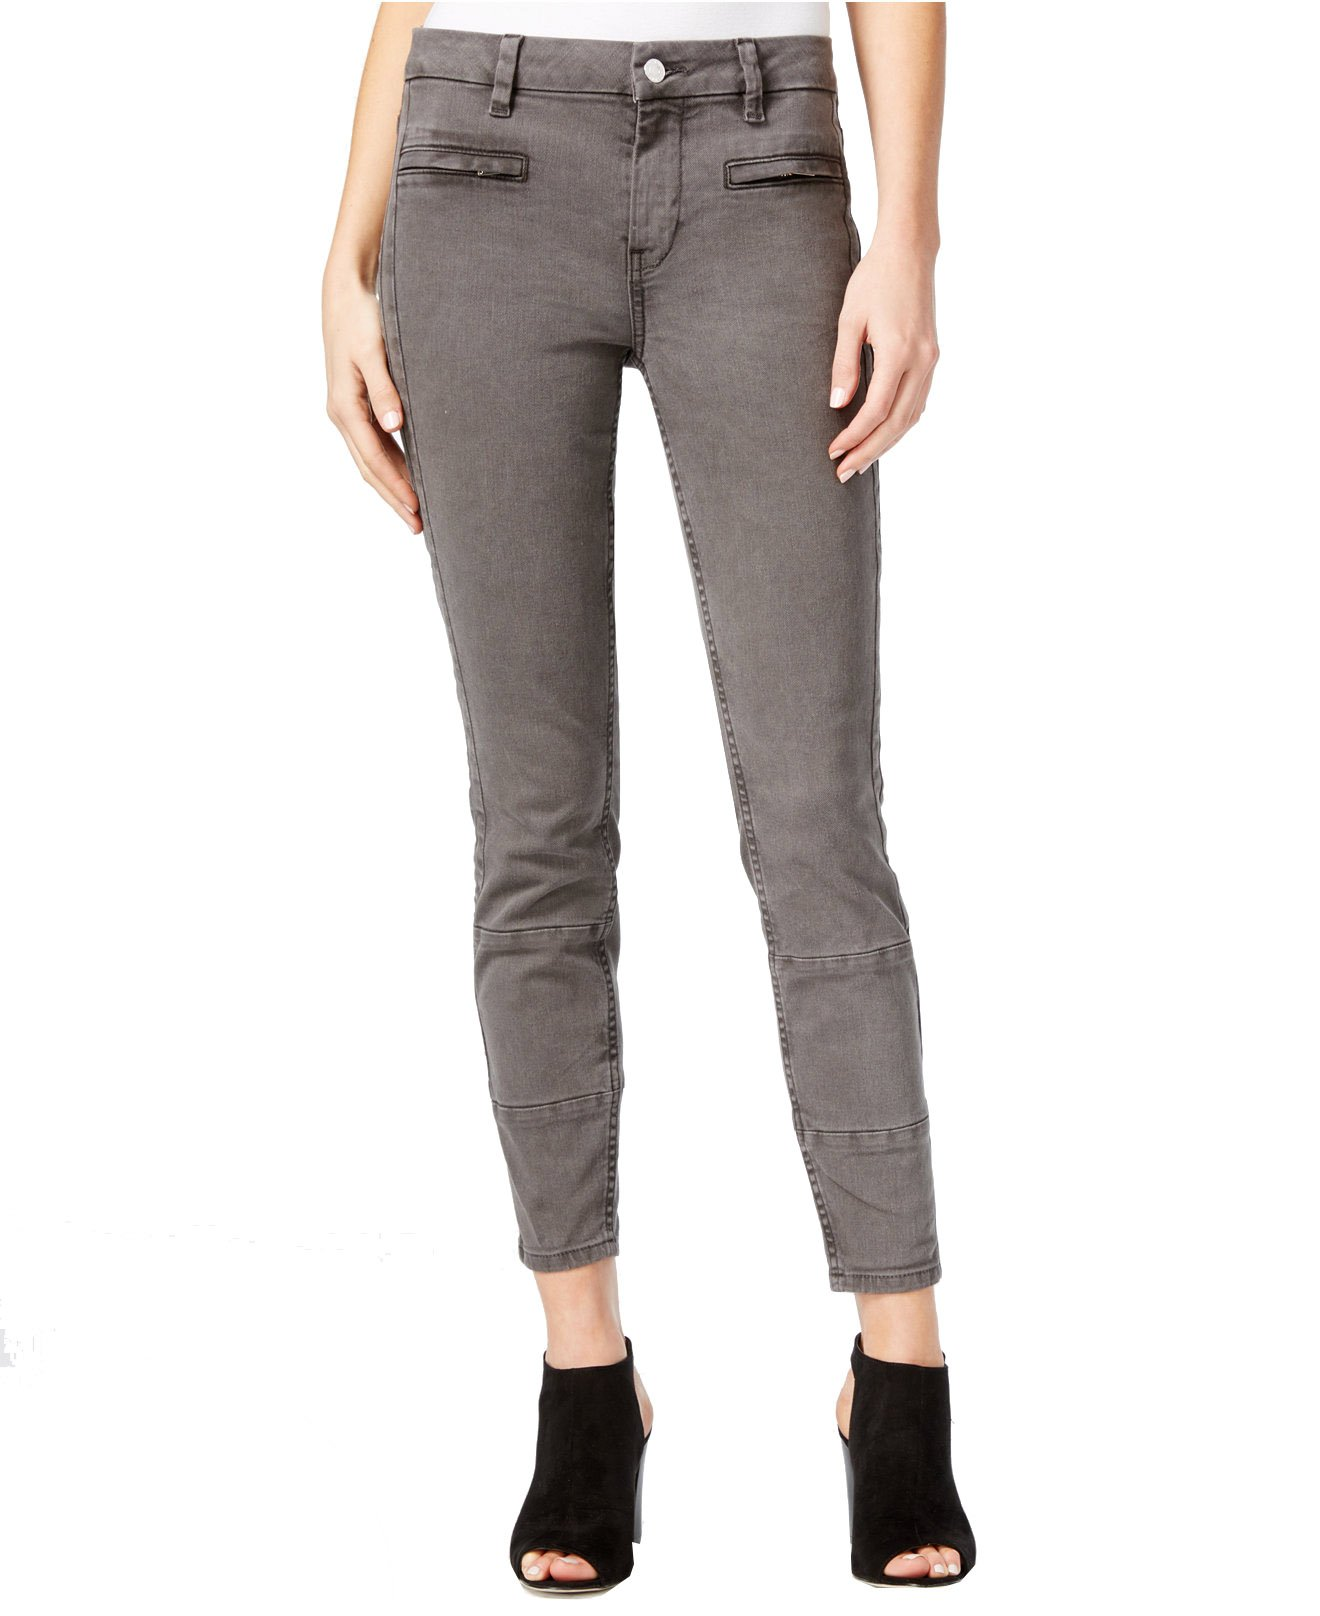 GUESS Women's almondine Overdye Wash Skinny Jeans (26, Lead Pipe)